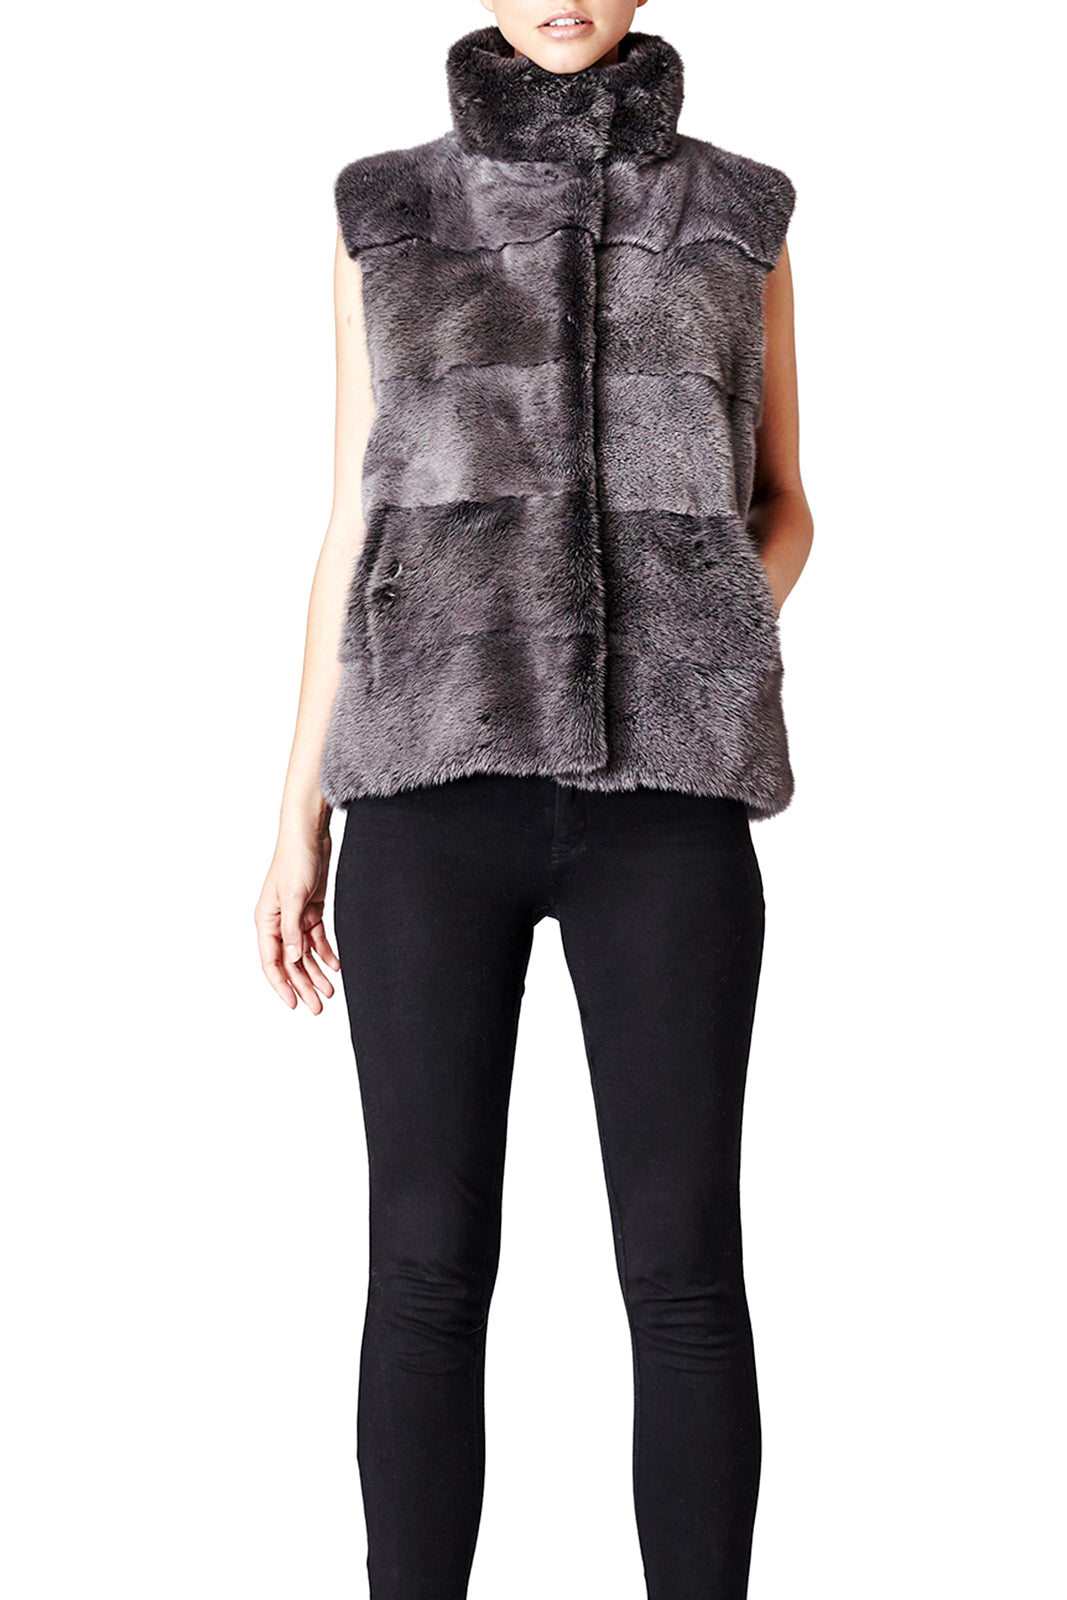 alice womens mink vest 60cm Anthracite 2